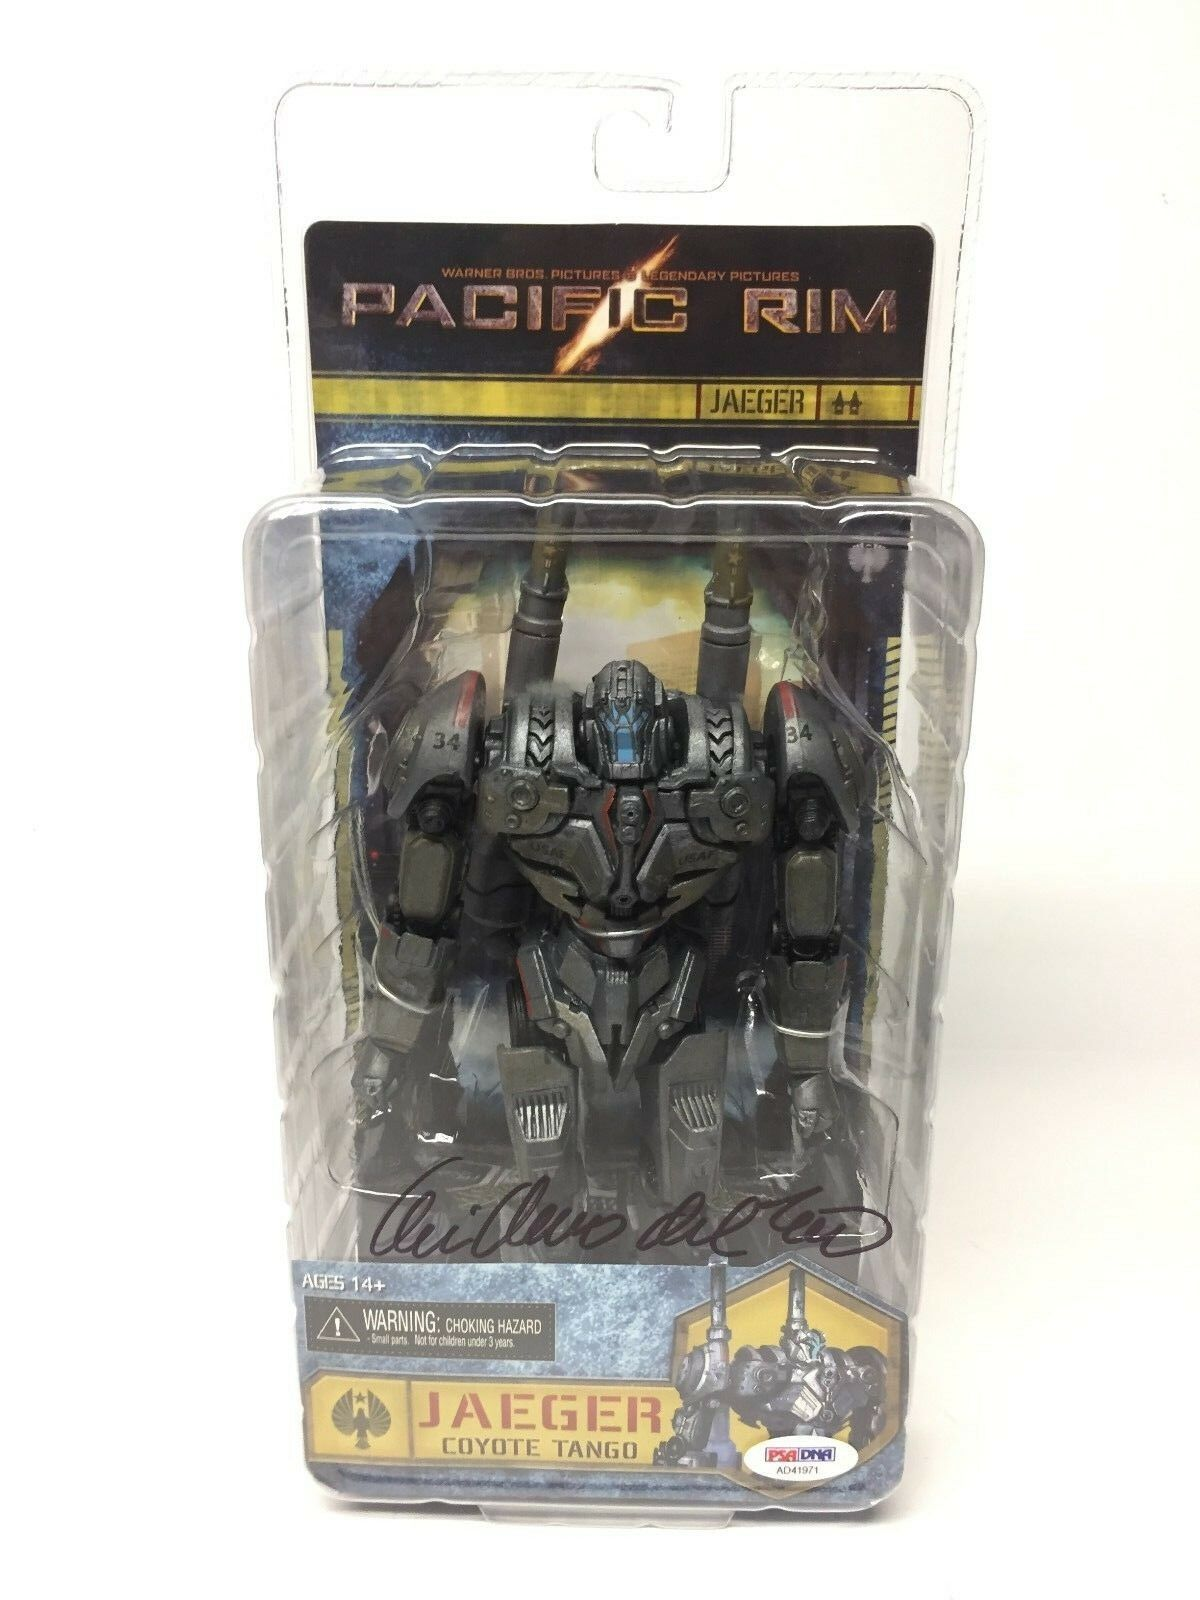 Guillermo Del Toro Signed Pacific Rim Jaeger Coyote Tango Action Figure PSA